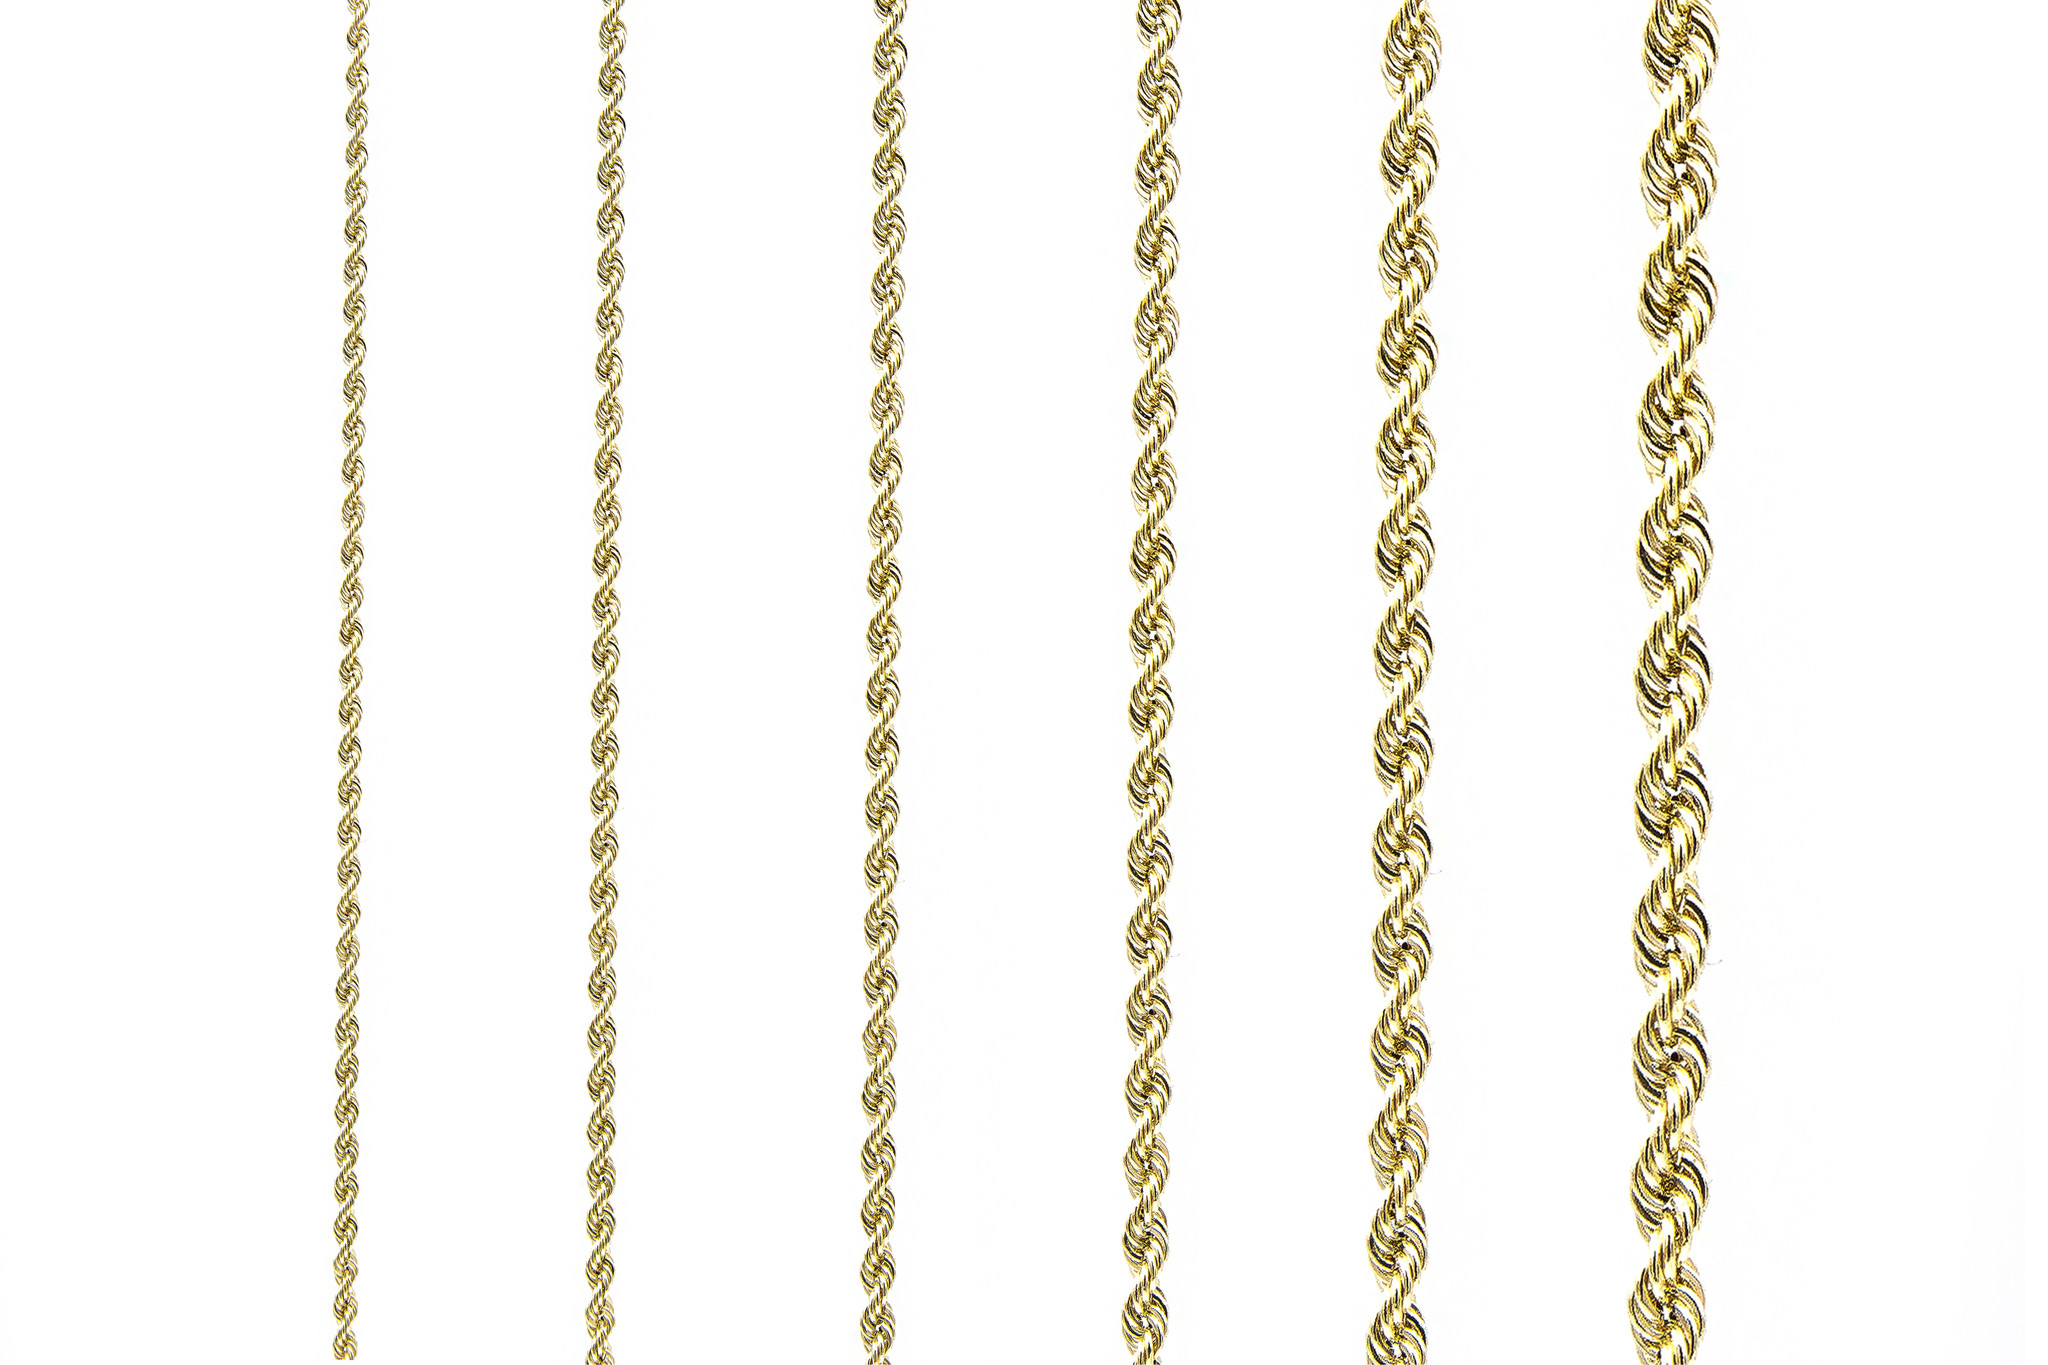 Rope Chain 18k-2,5 mm-3